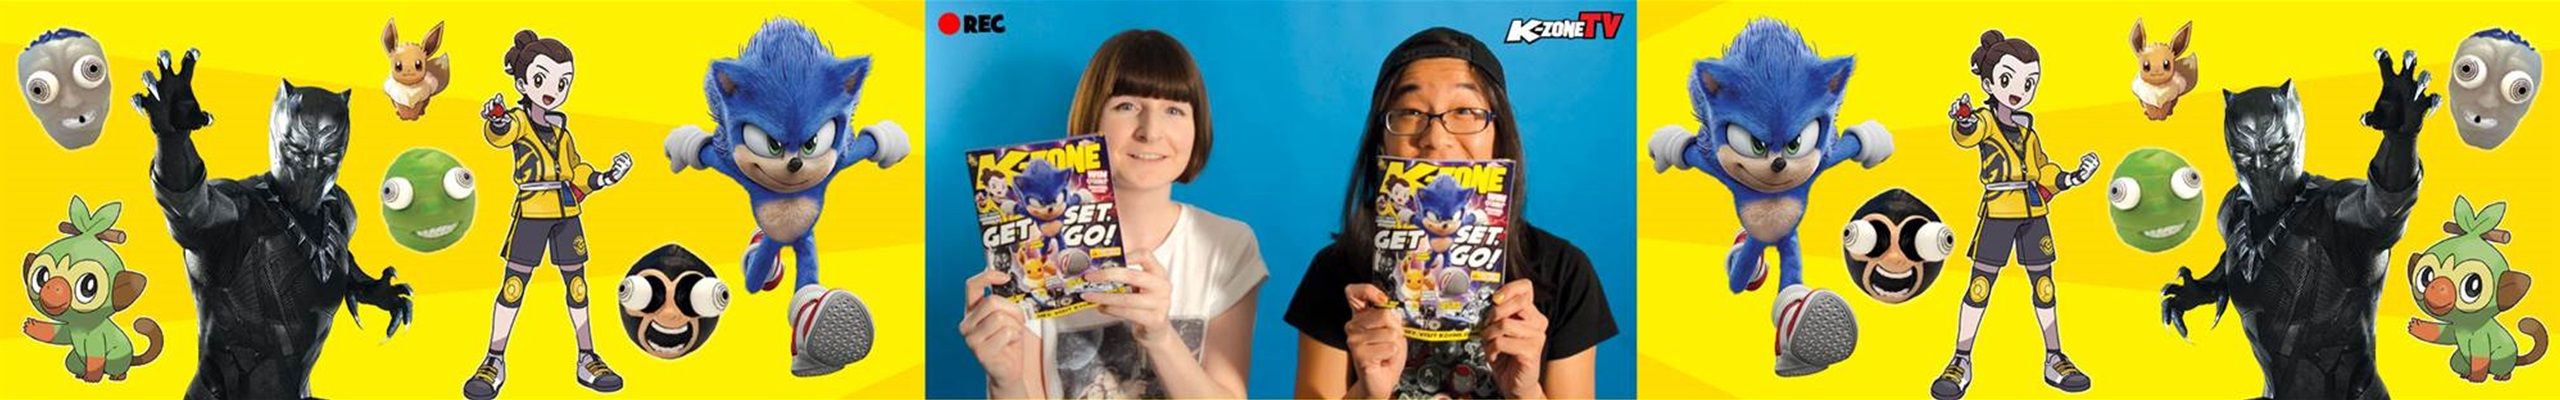 K-Zone TV Episode 59: Get Set, Go! Mad Science + Tech Special